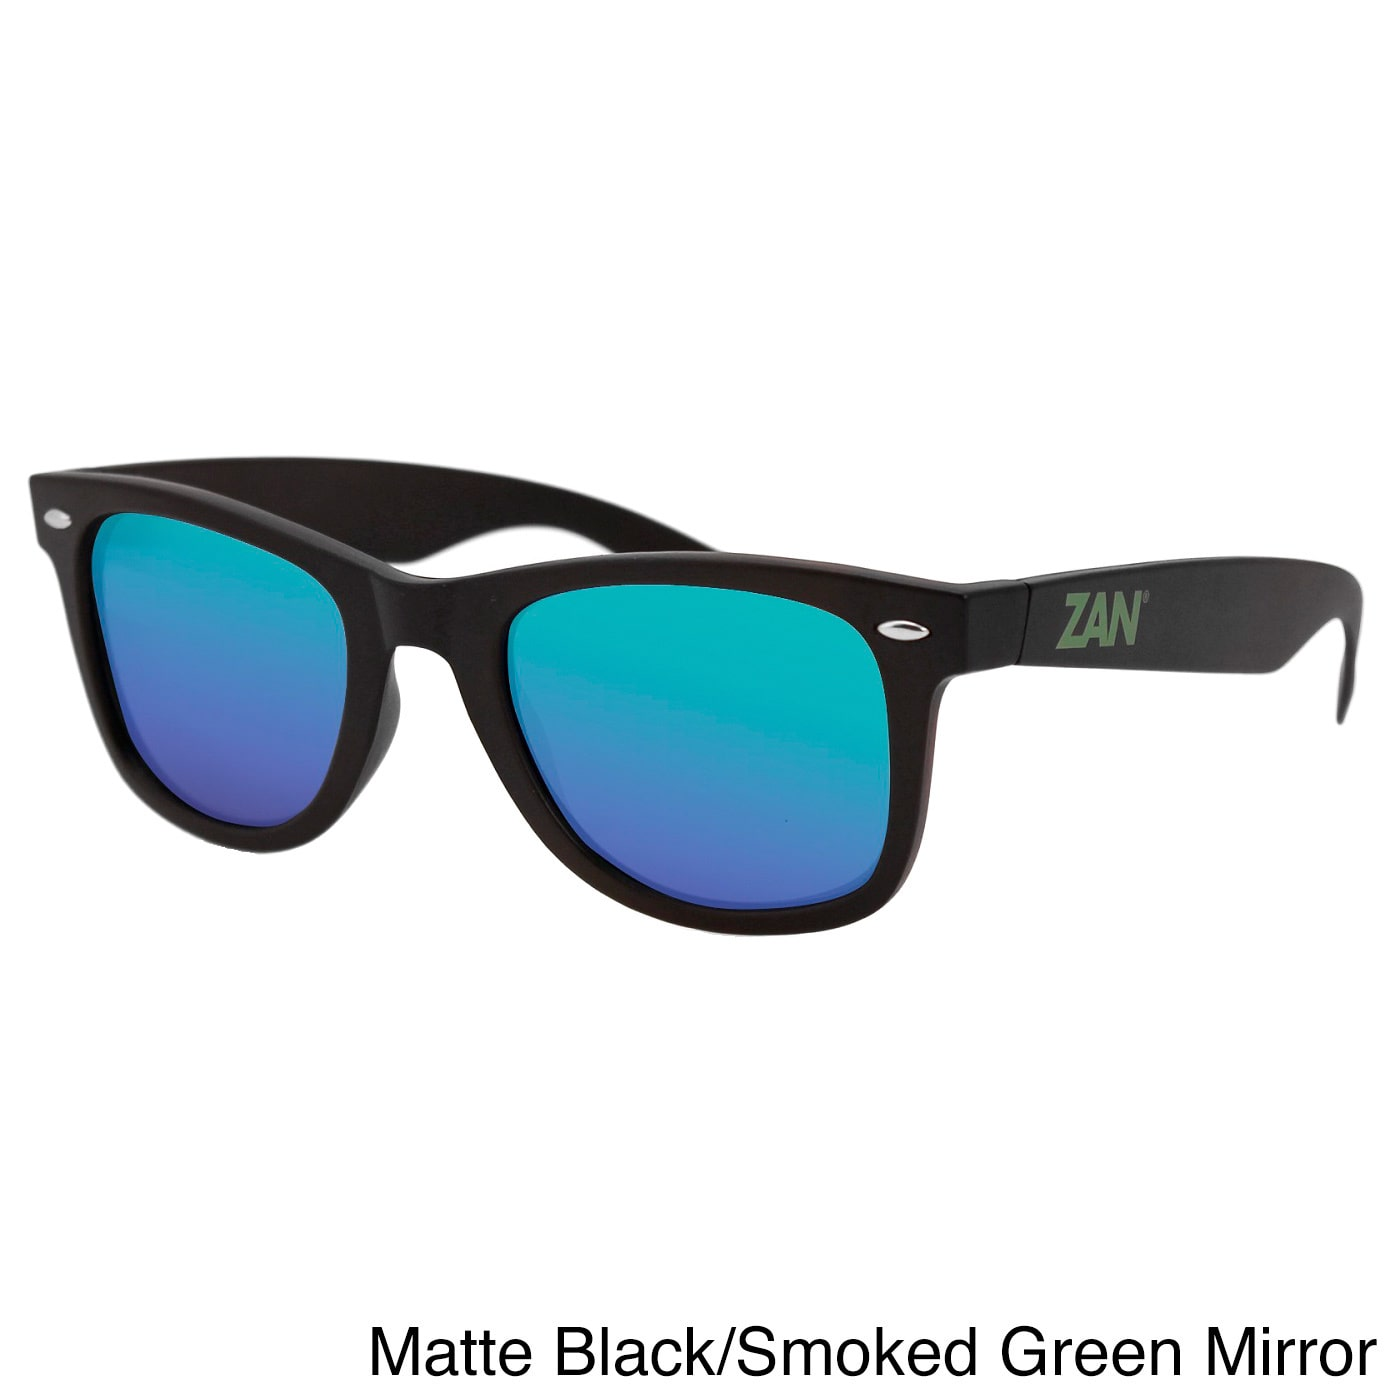 4d483eecd5 ZANheadgear - Winna Sunglasses with Tortoise Frame-Smoked Green Mirror -  Walmart.com